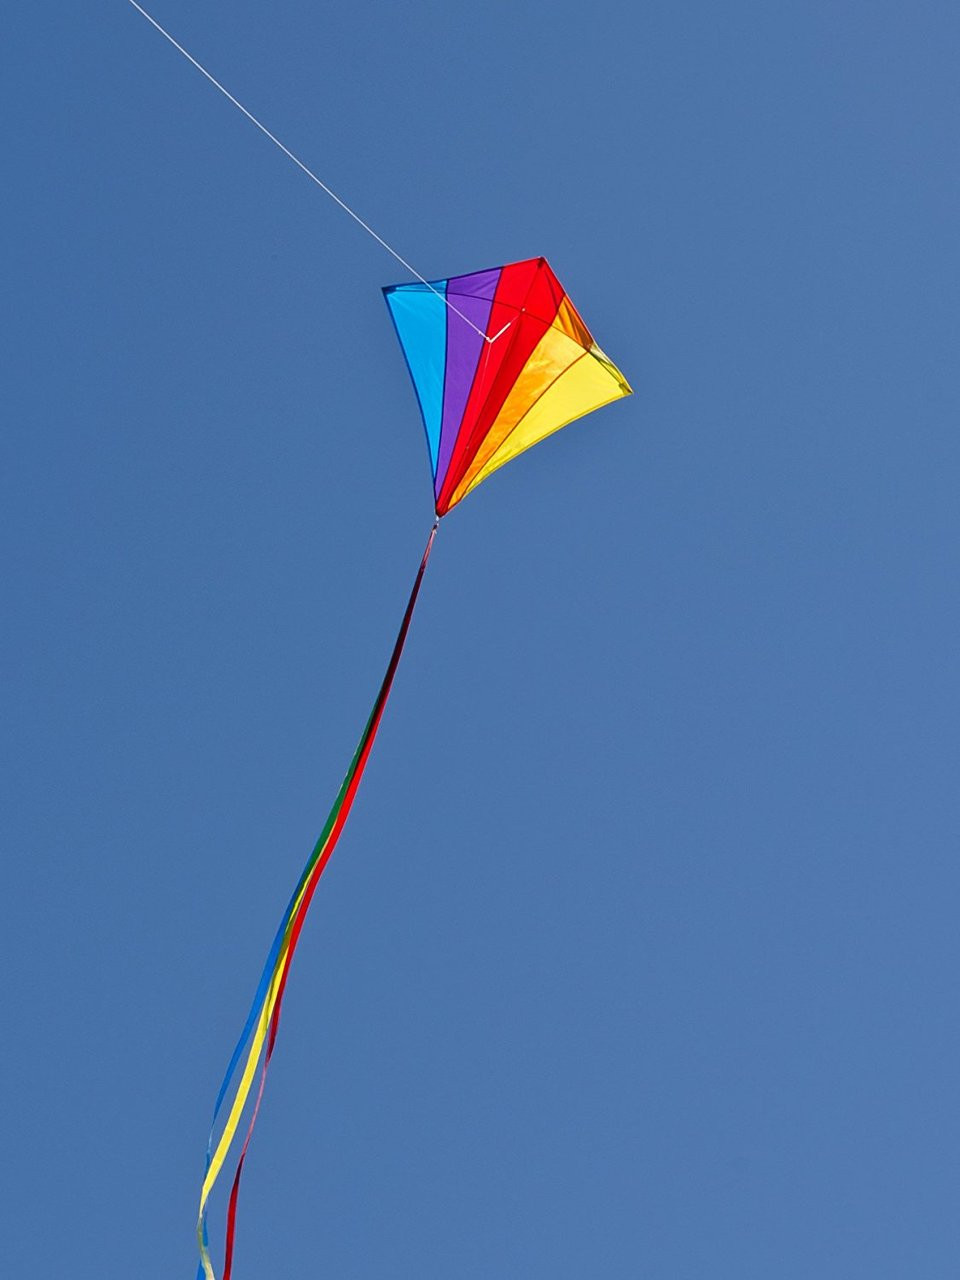 borealis kites premier kite cool orbit diamond designs products